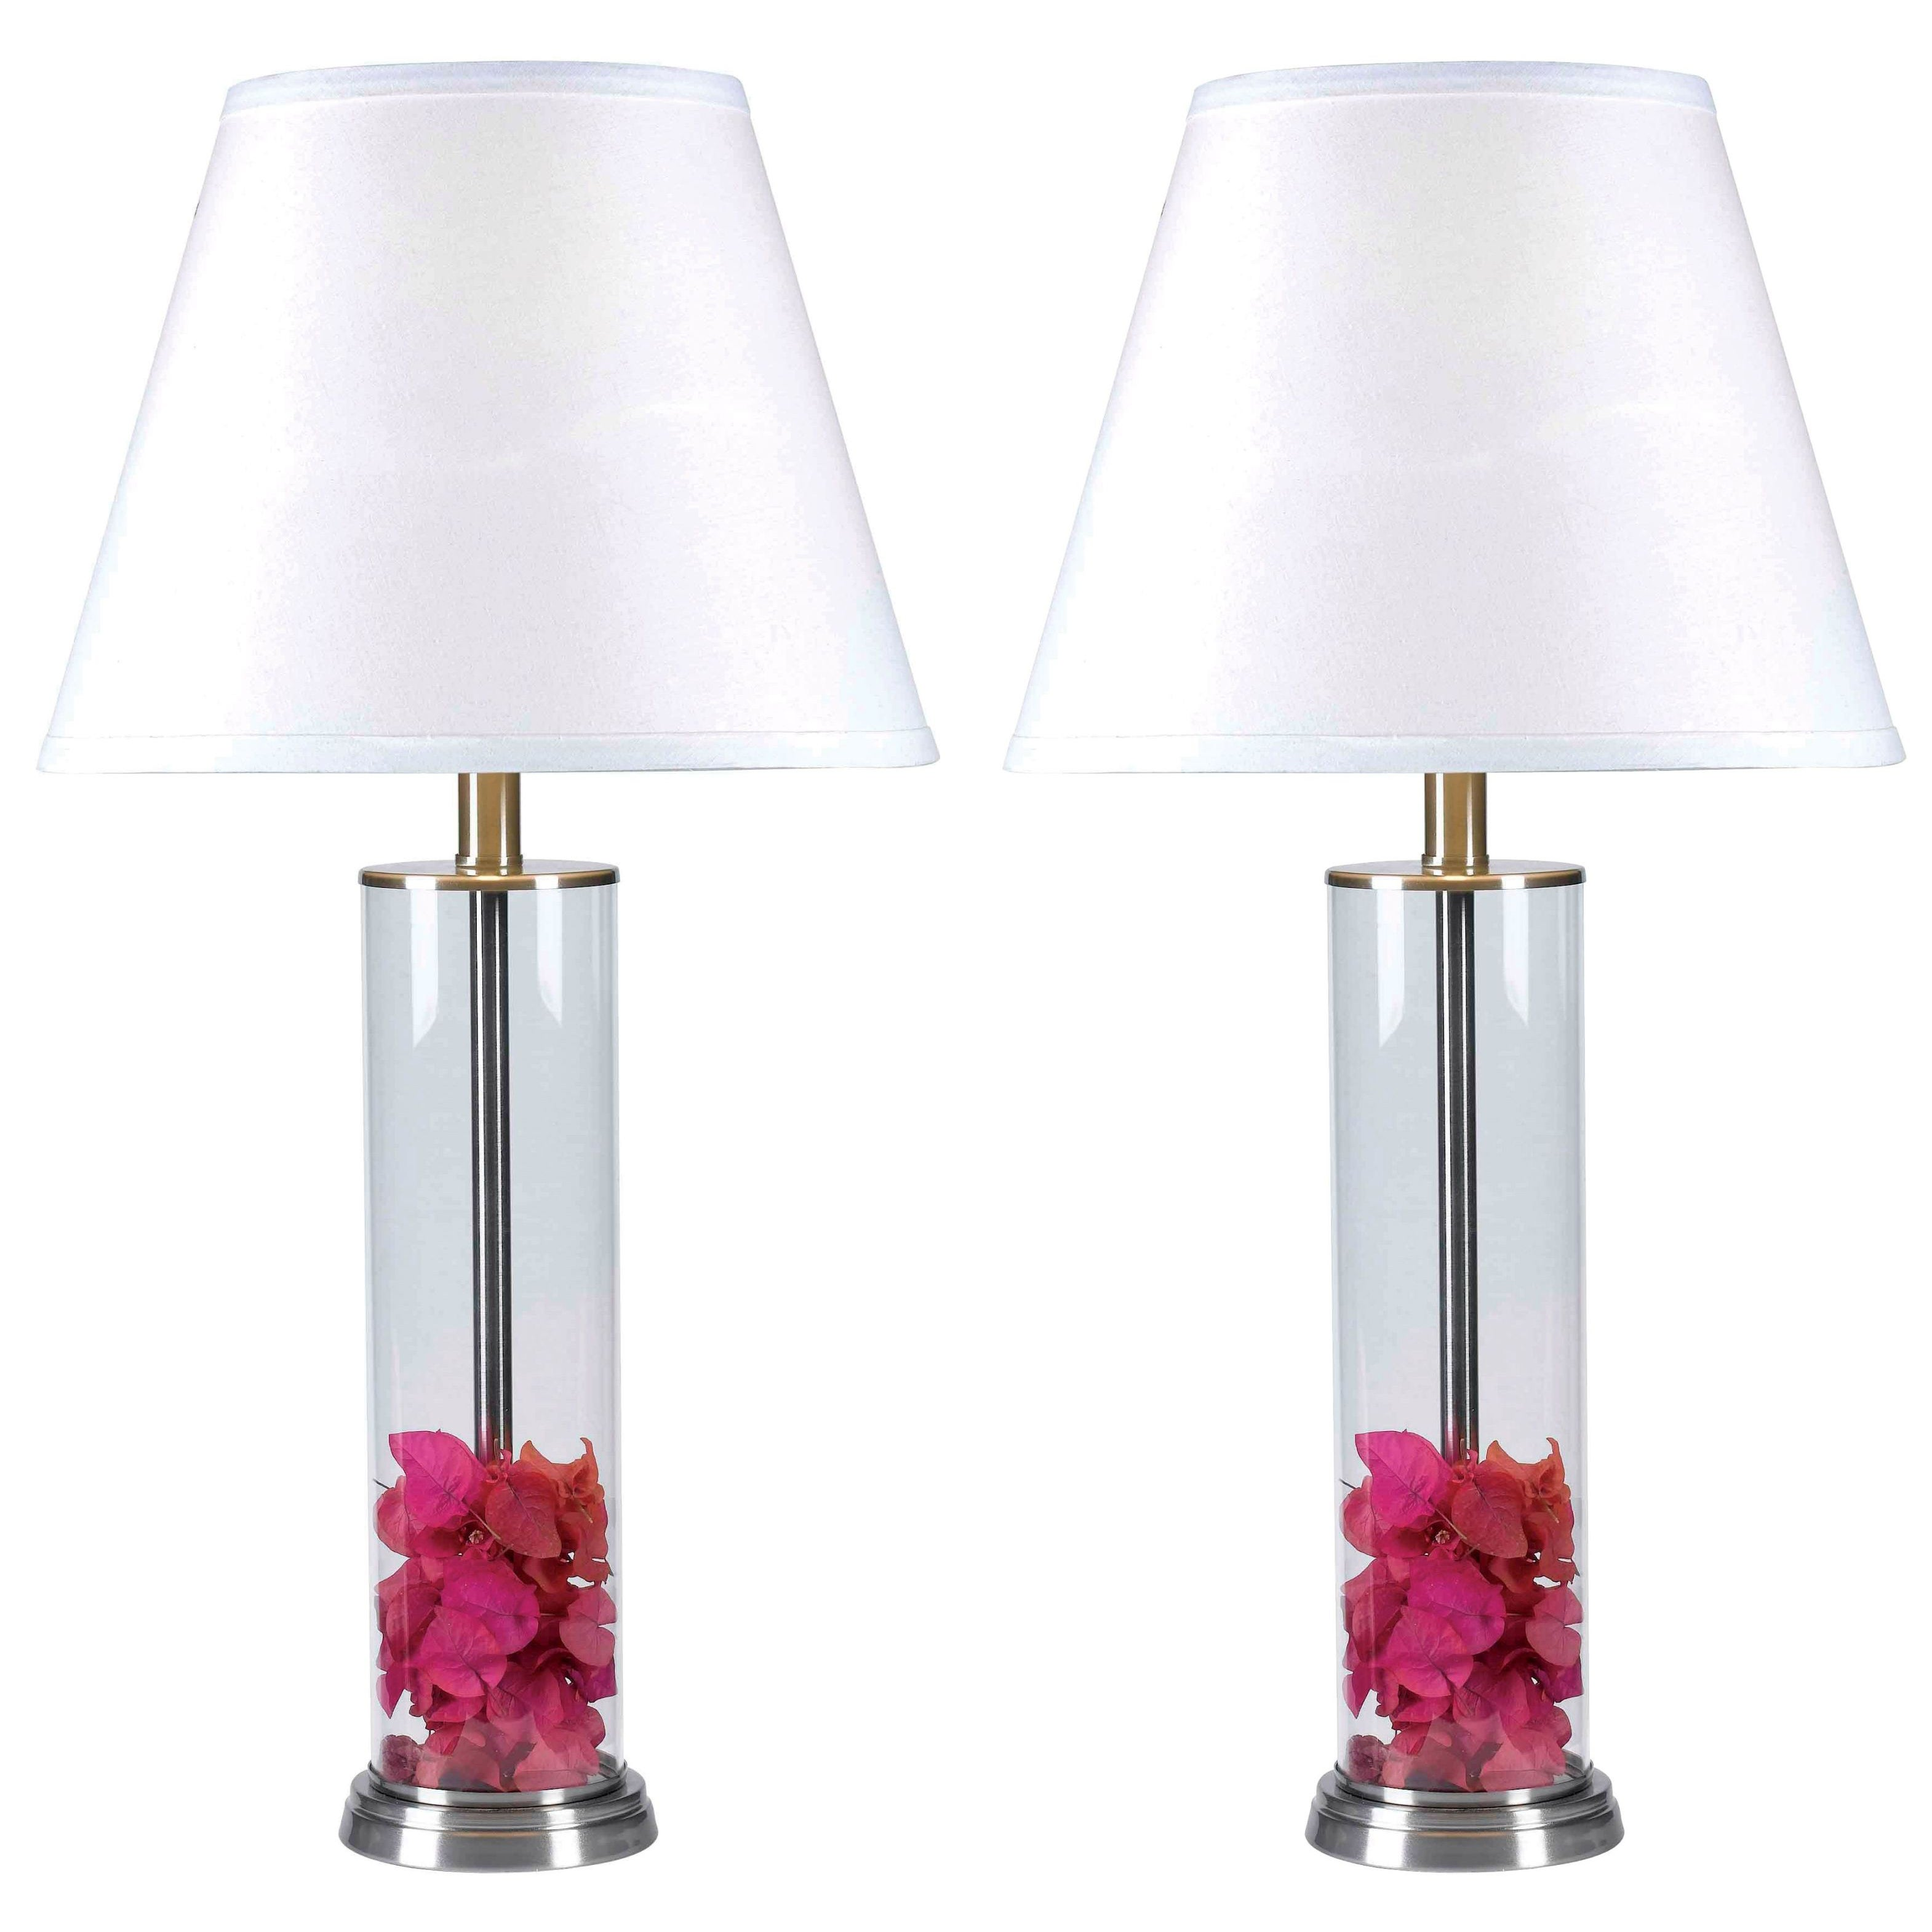 Shop Design Craft Clear Glass Fillable Table Lamp Set Of 2 Free